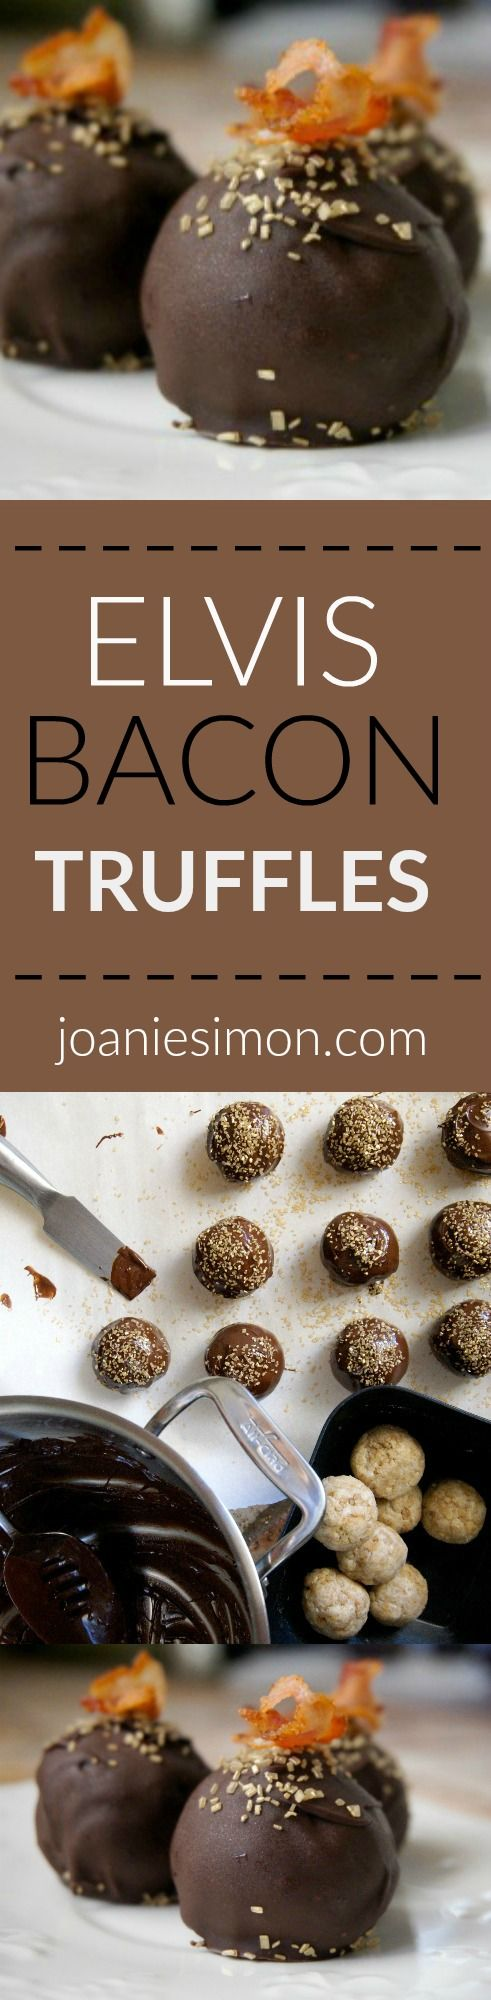 Elvis' favorite things in a cake truffle:  banana, peanut butter and bacon, all covered in chocolate!